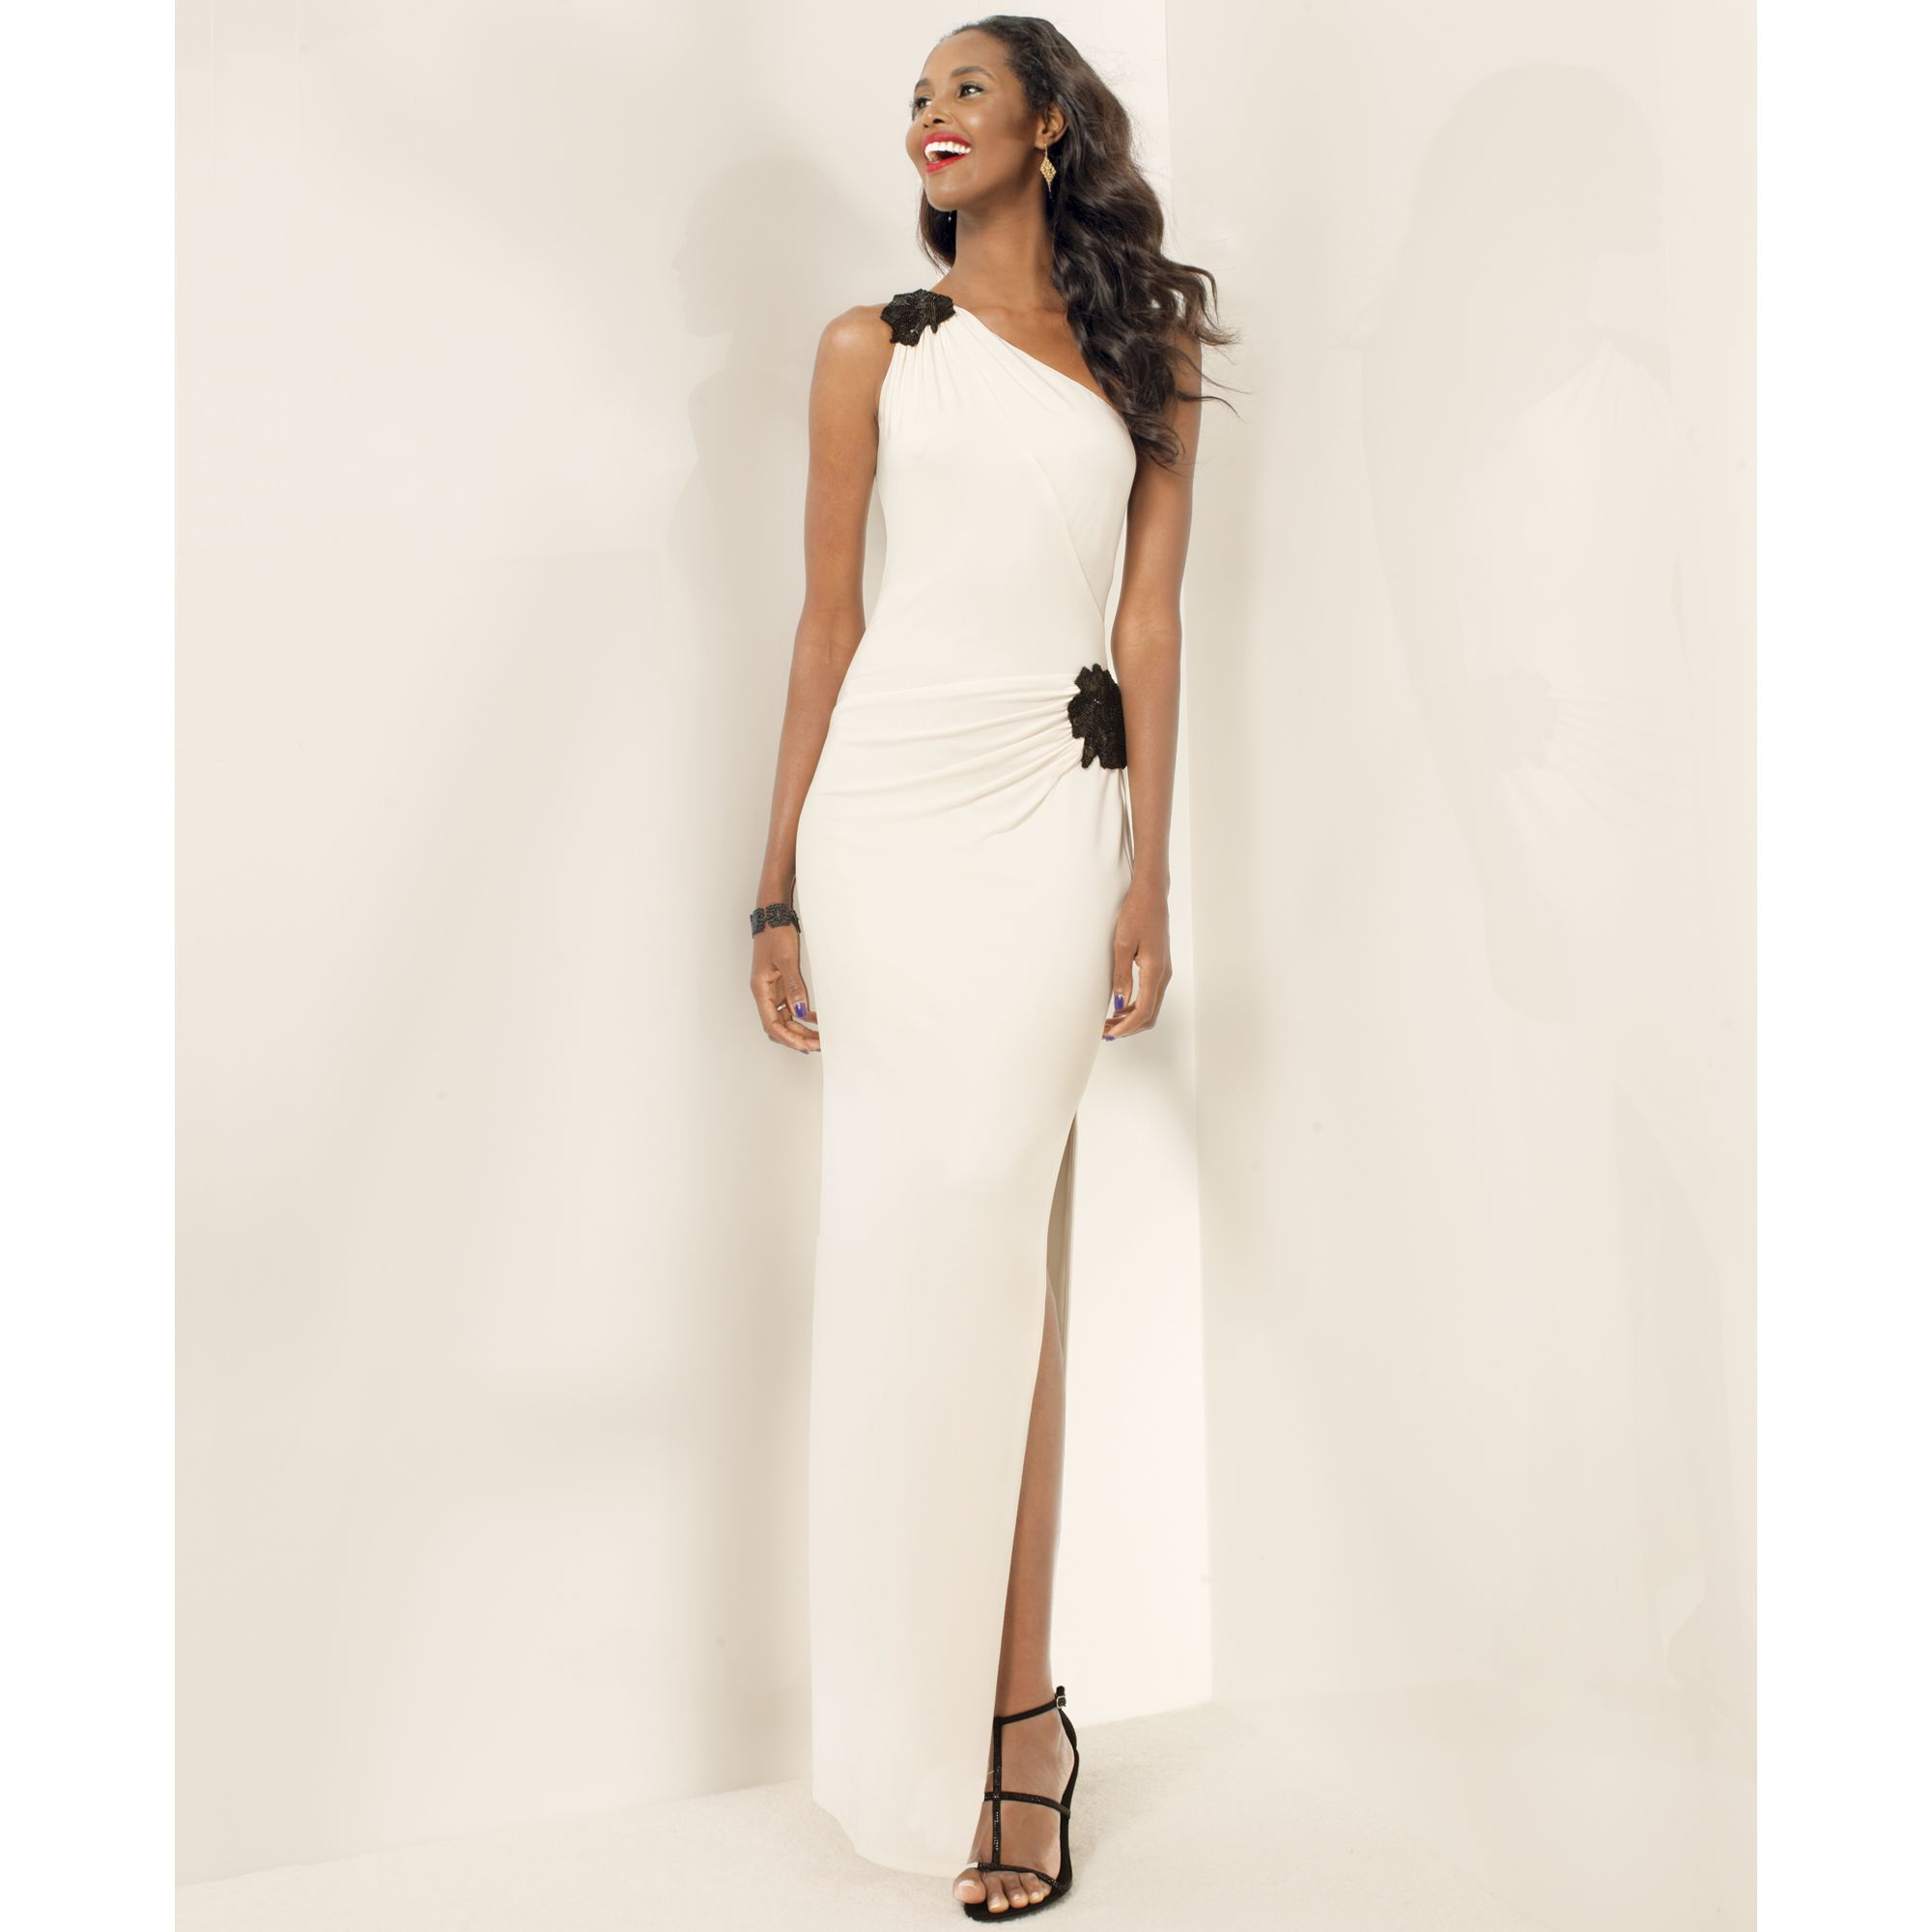 Lyst - Lauren By Ralph Lauren Beaded One Shoulder Gown in White